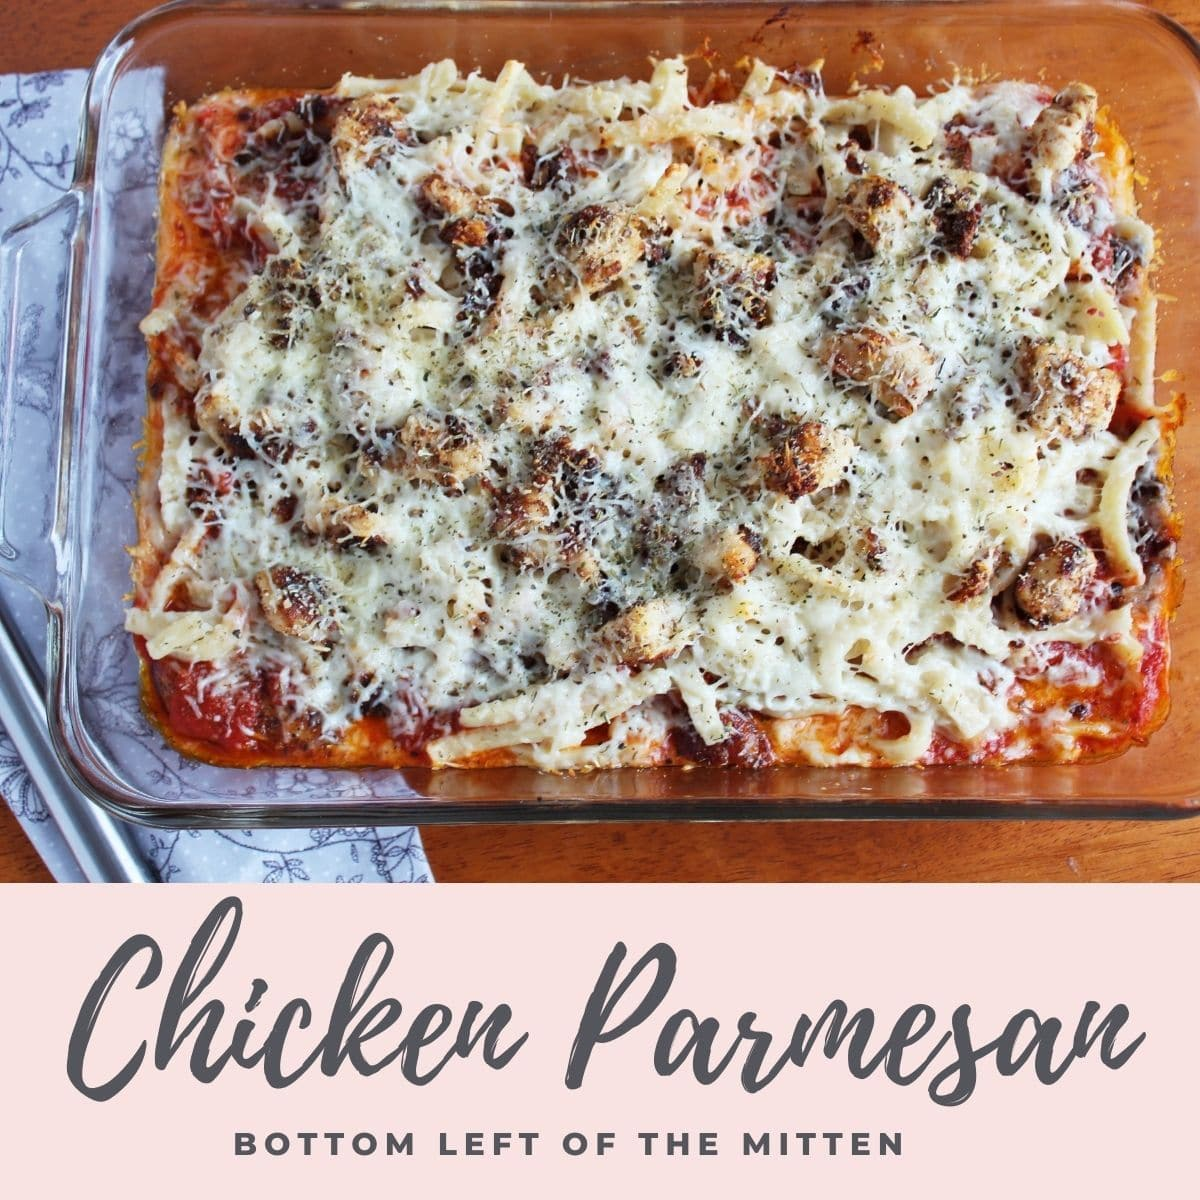 collage of an image of Chicken Parmesan with descriptive text overlay.